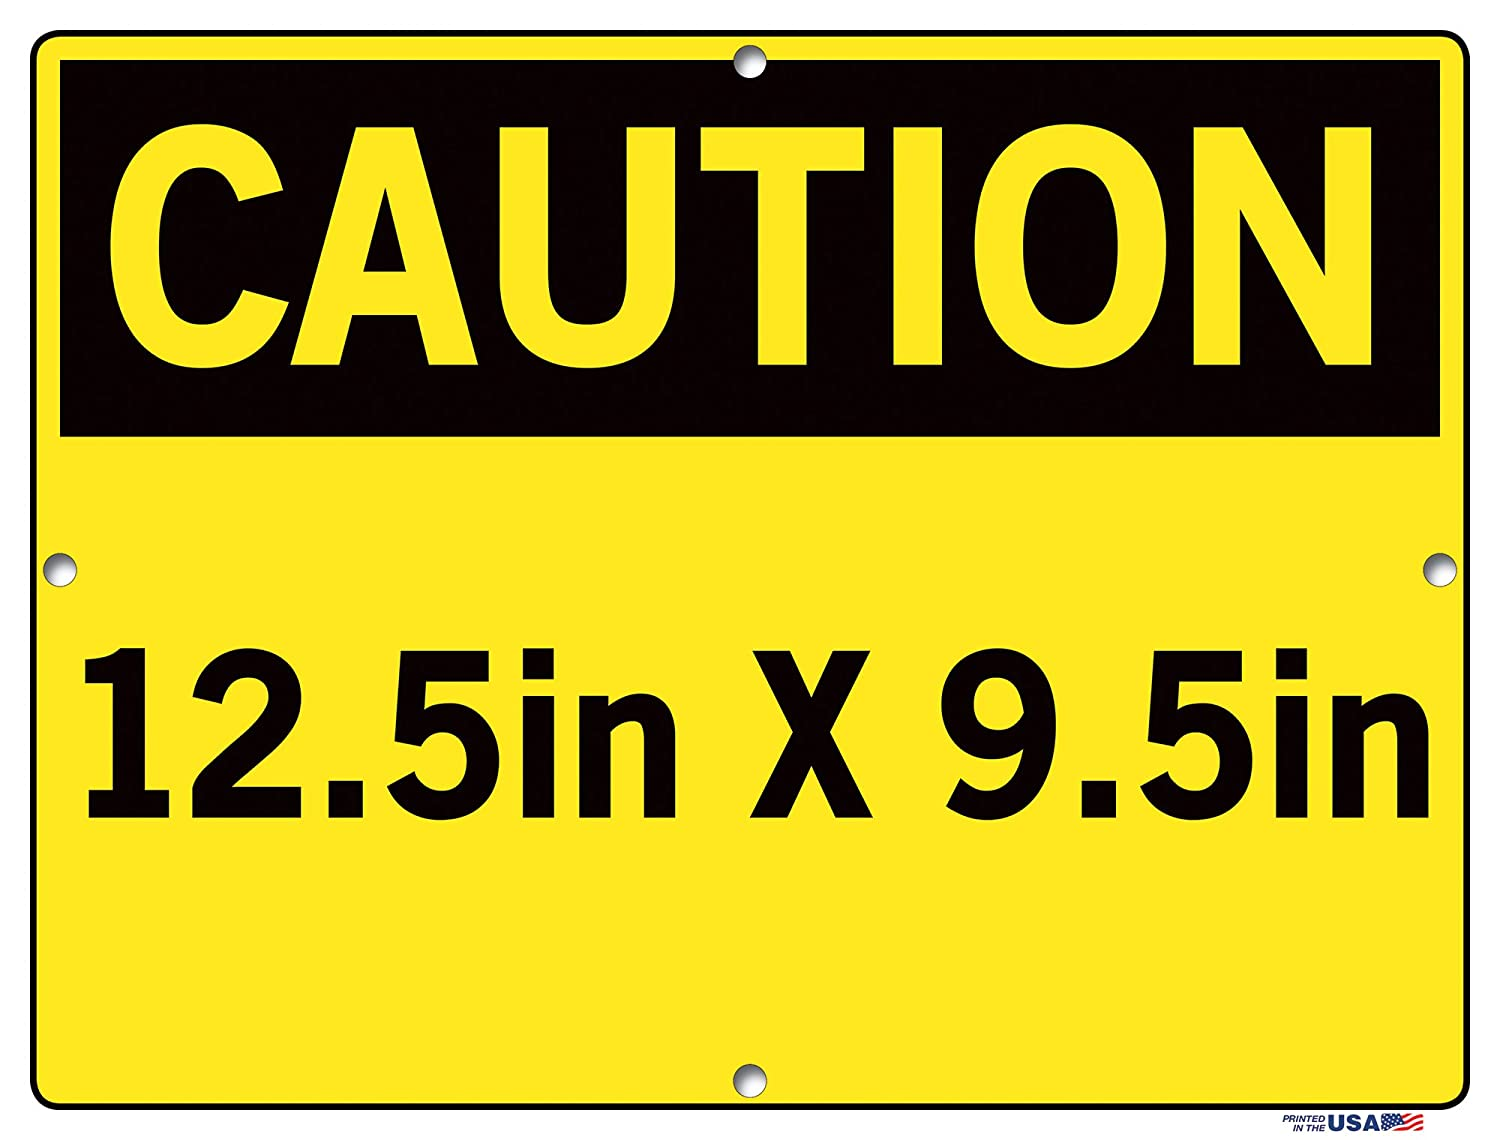 Vestil Caution Sign SI-C-76-B-AL-040-S Aluminum .040 Overall Size 12.5W x 9.5H Admittance to Authorized Personnel ONLY ADMISI/ÓN Solo A Personal AUTORIZADO